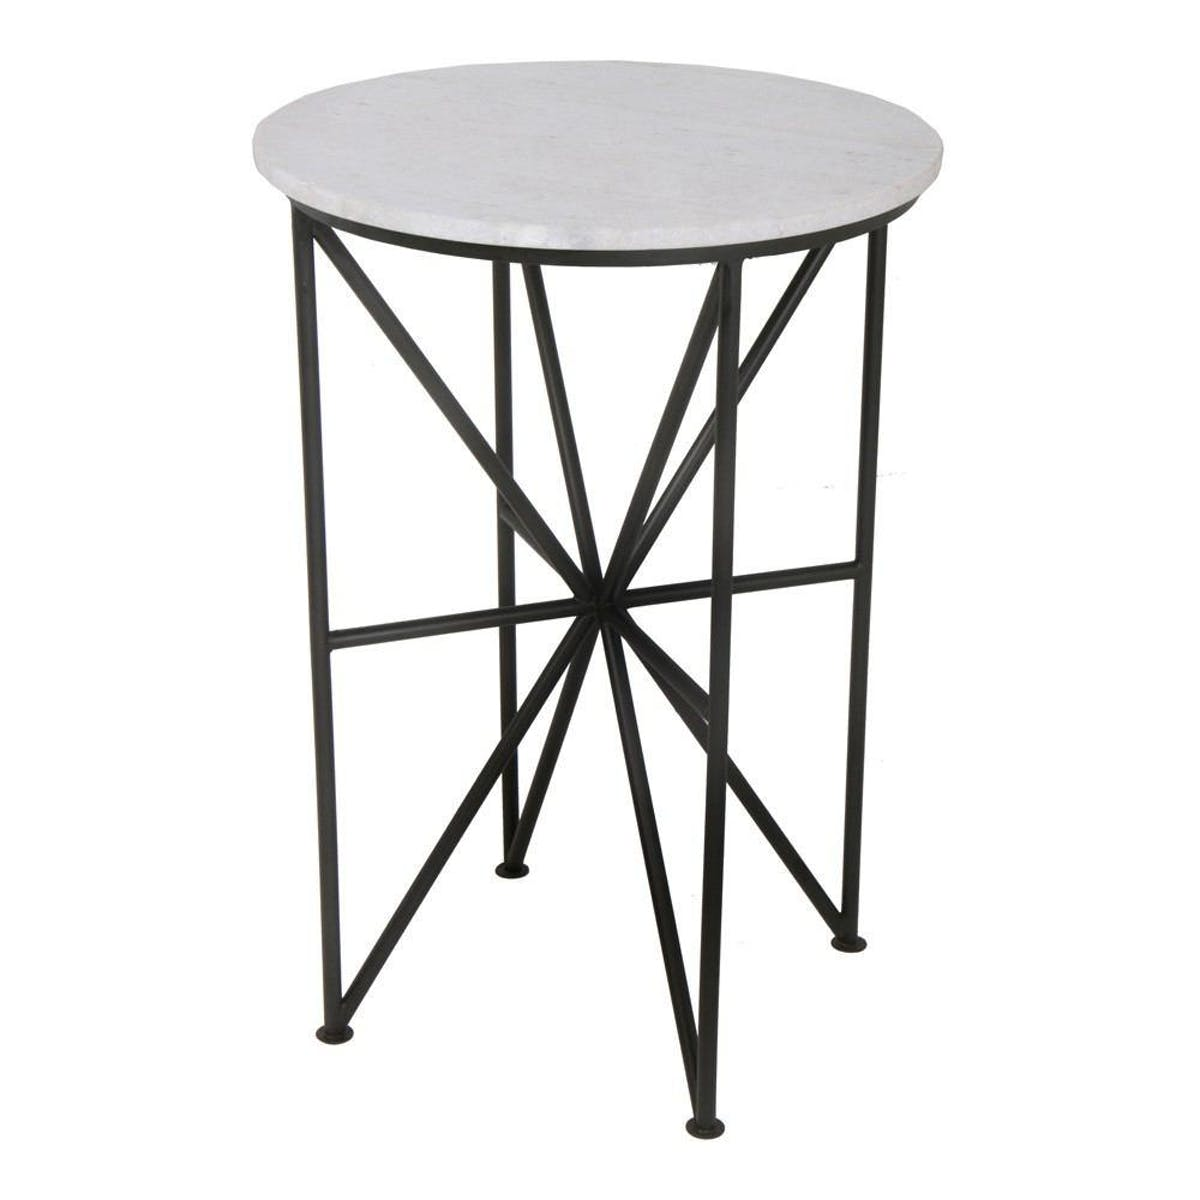 moe home collection quadrant marble accent table modish white tap expand small glass bedside outdoor furniture sets carpet threshold transition strip wood trestle dining homemade